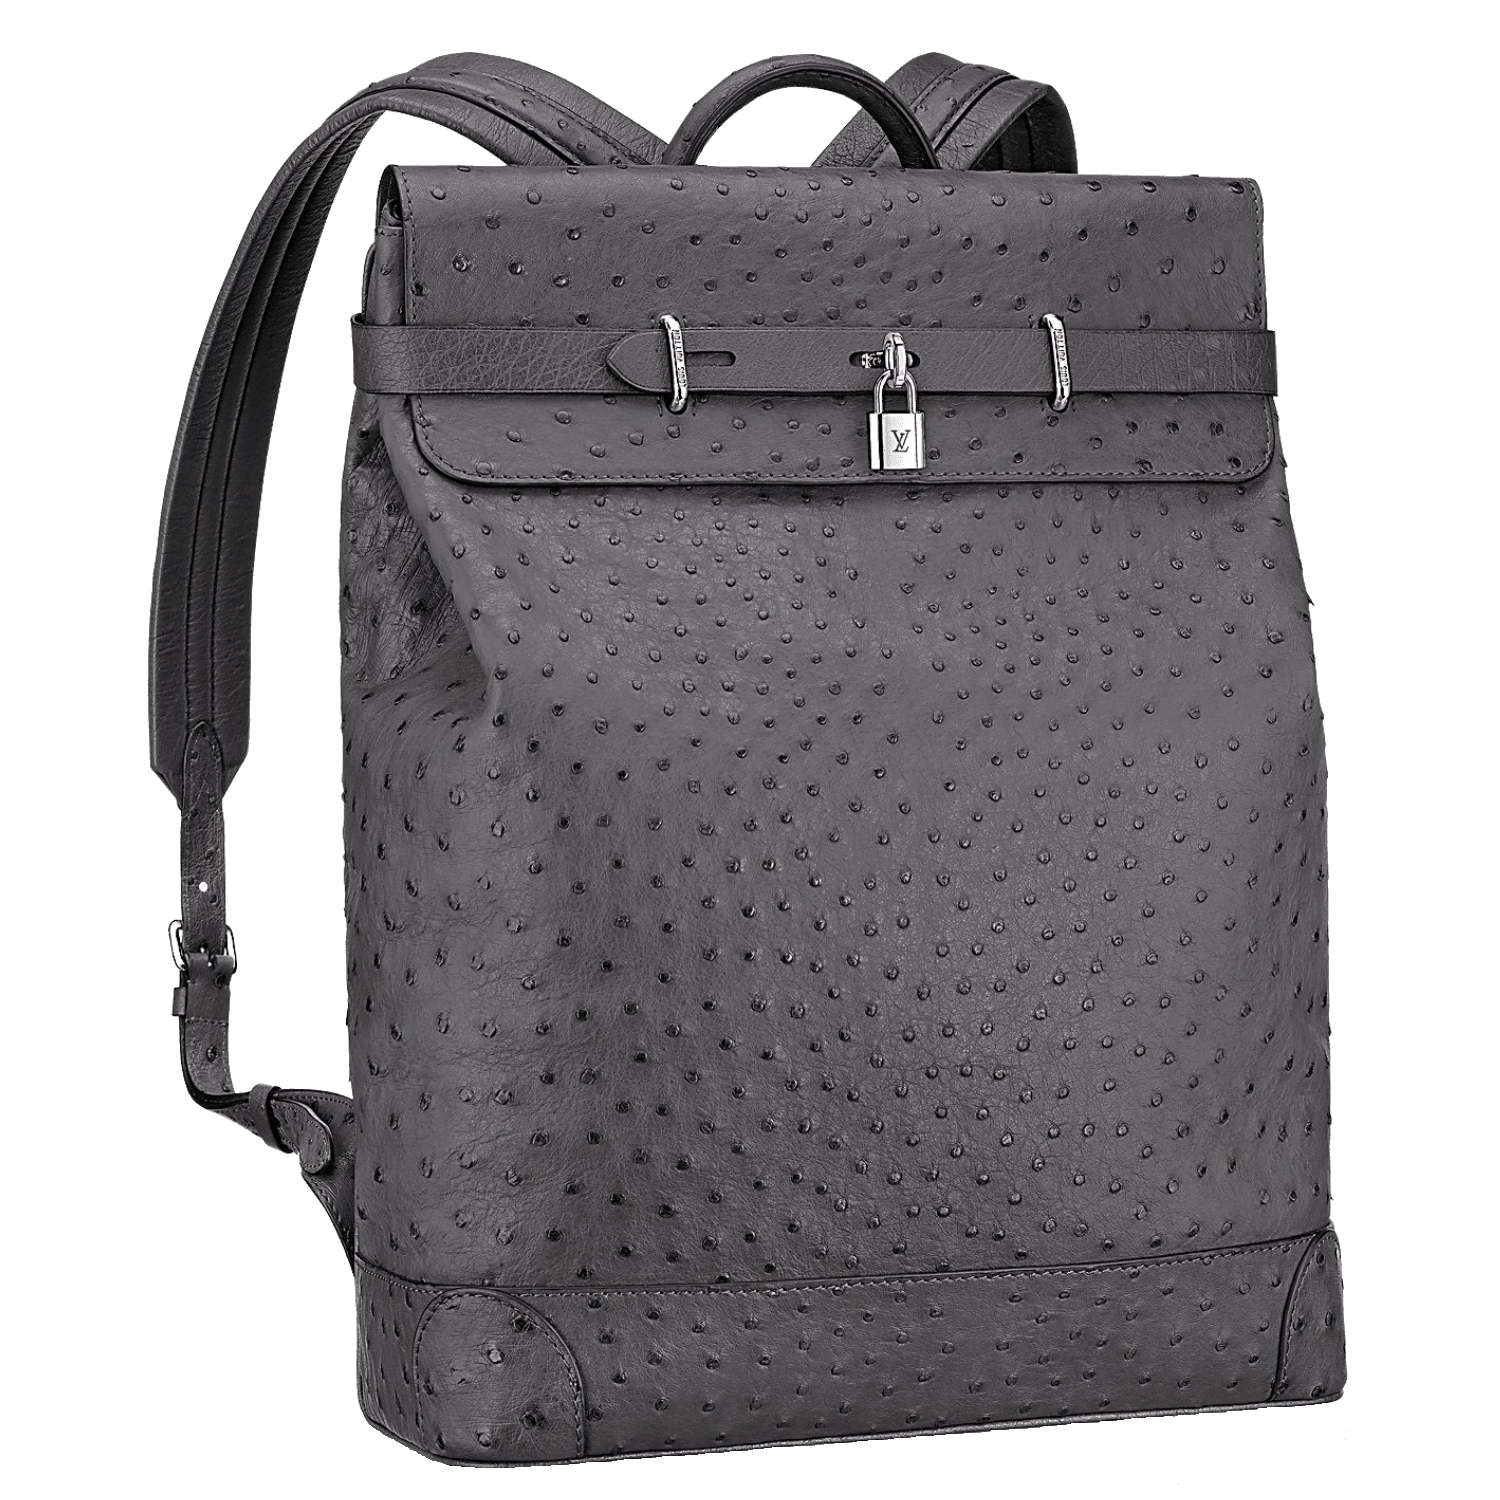 STEAMER BACKPACK - €25,000 $31,500N93079OSTRICH LEATHER